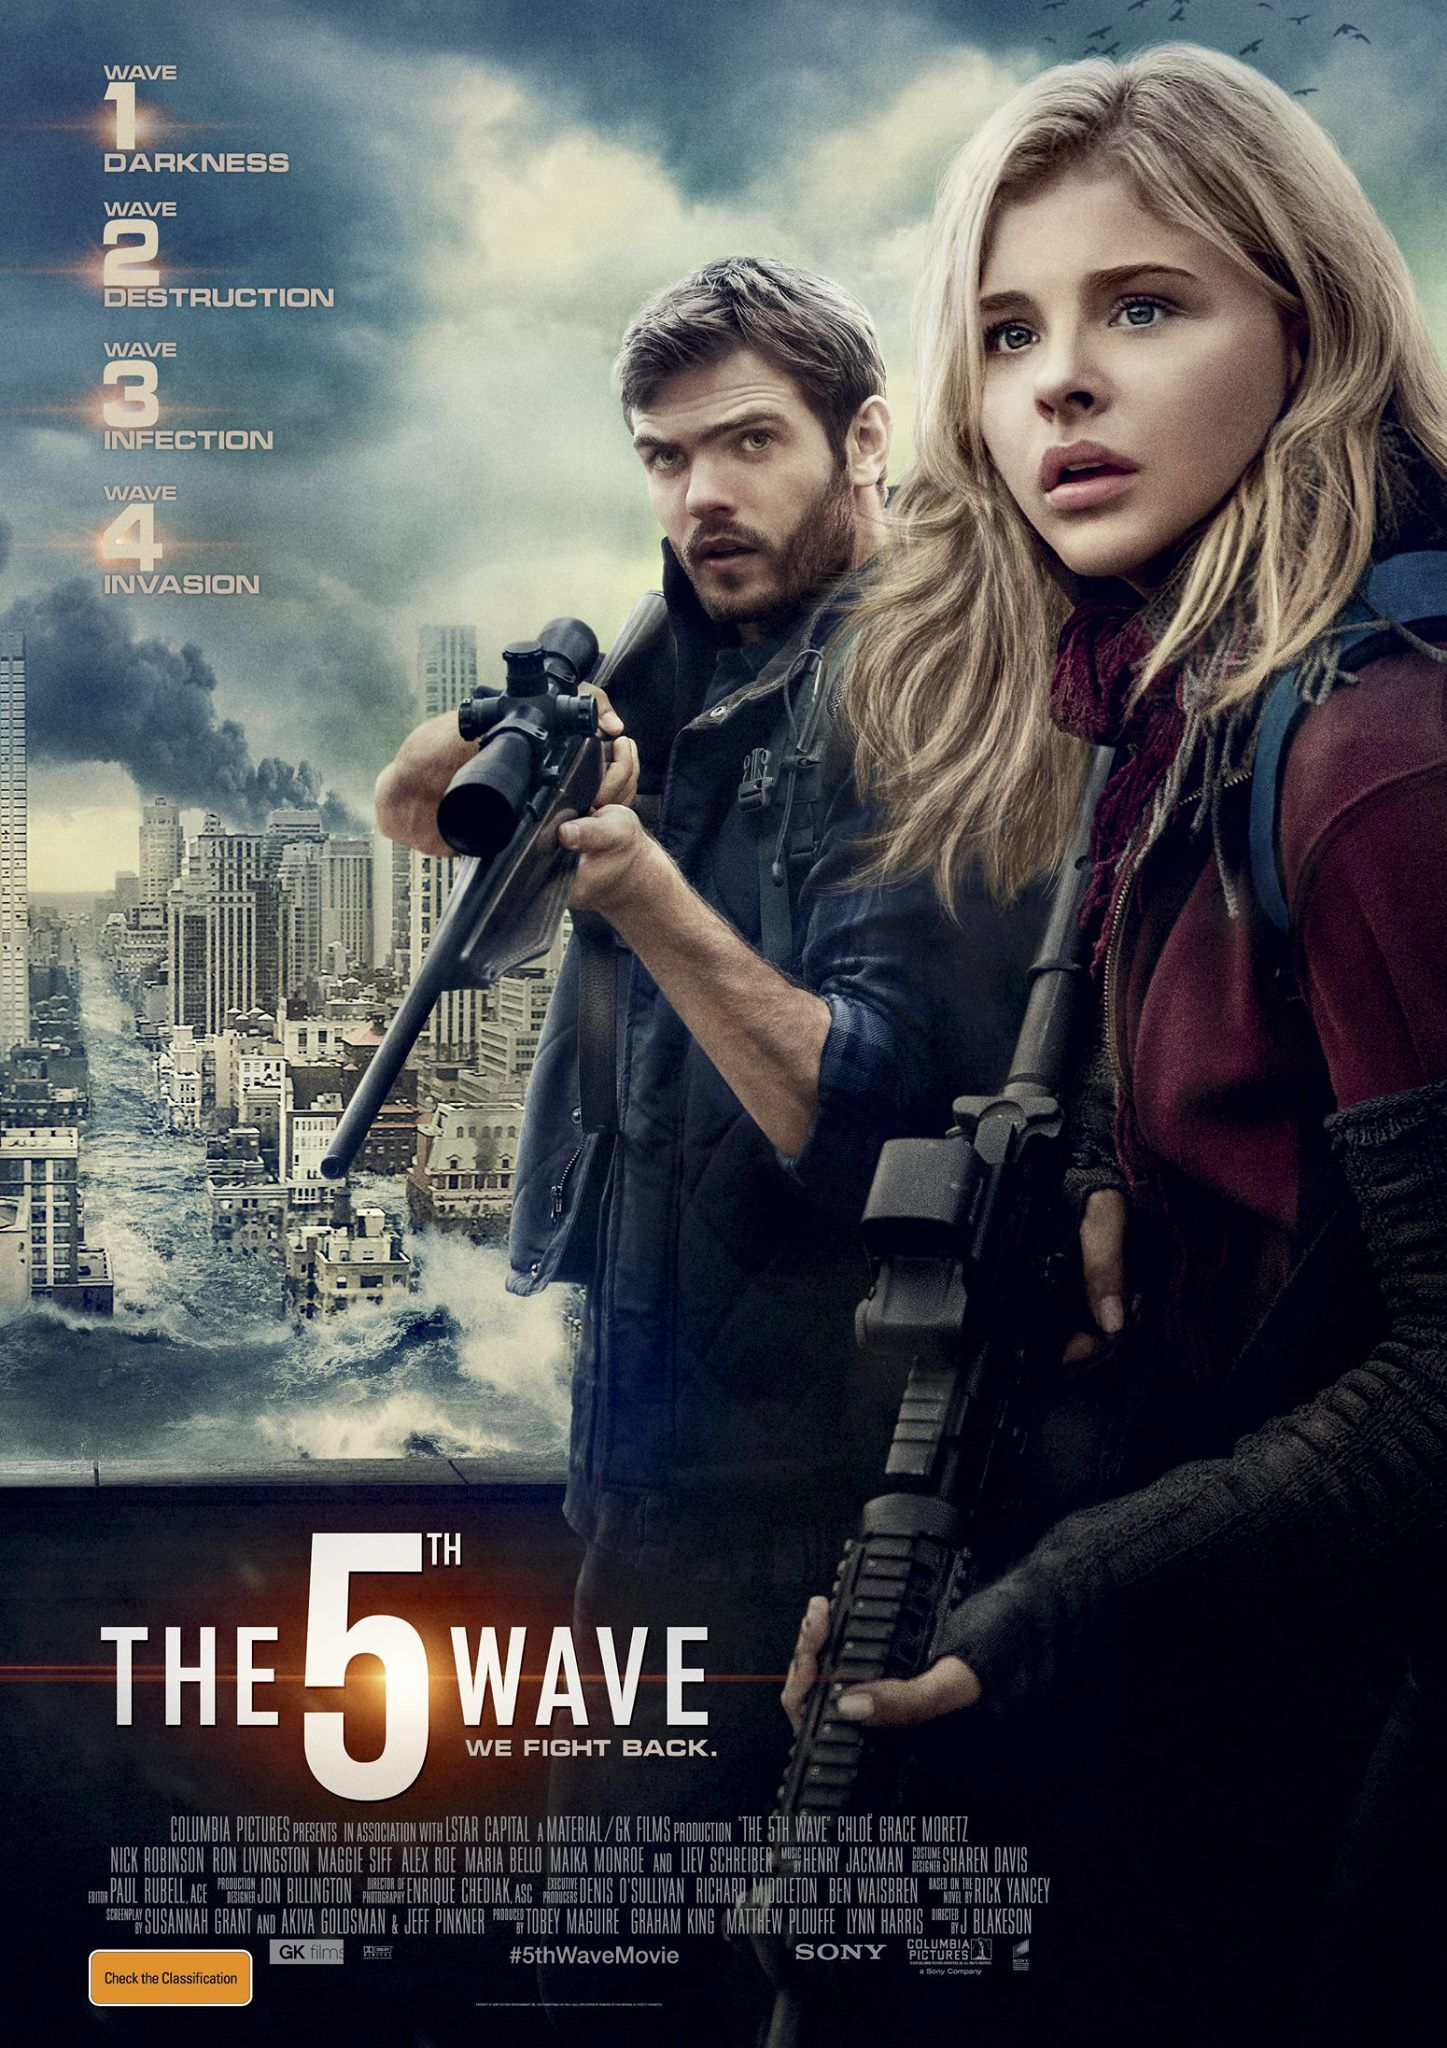 The 5th wave (2016) | Movies | The 5th wave movie, The fifth wave ...